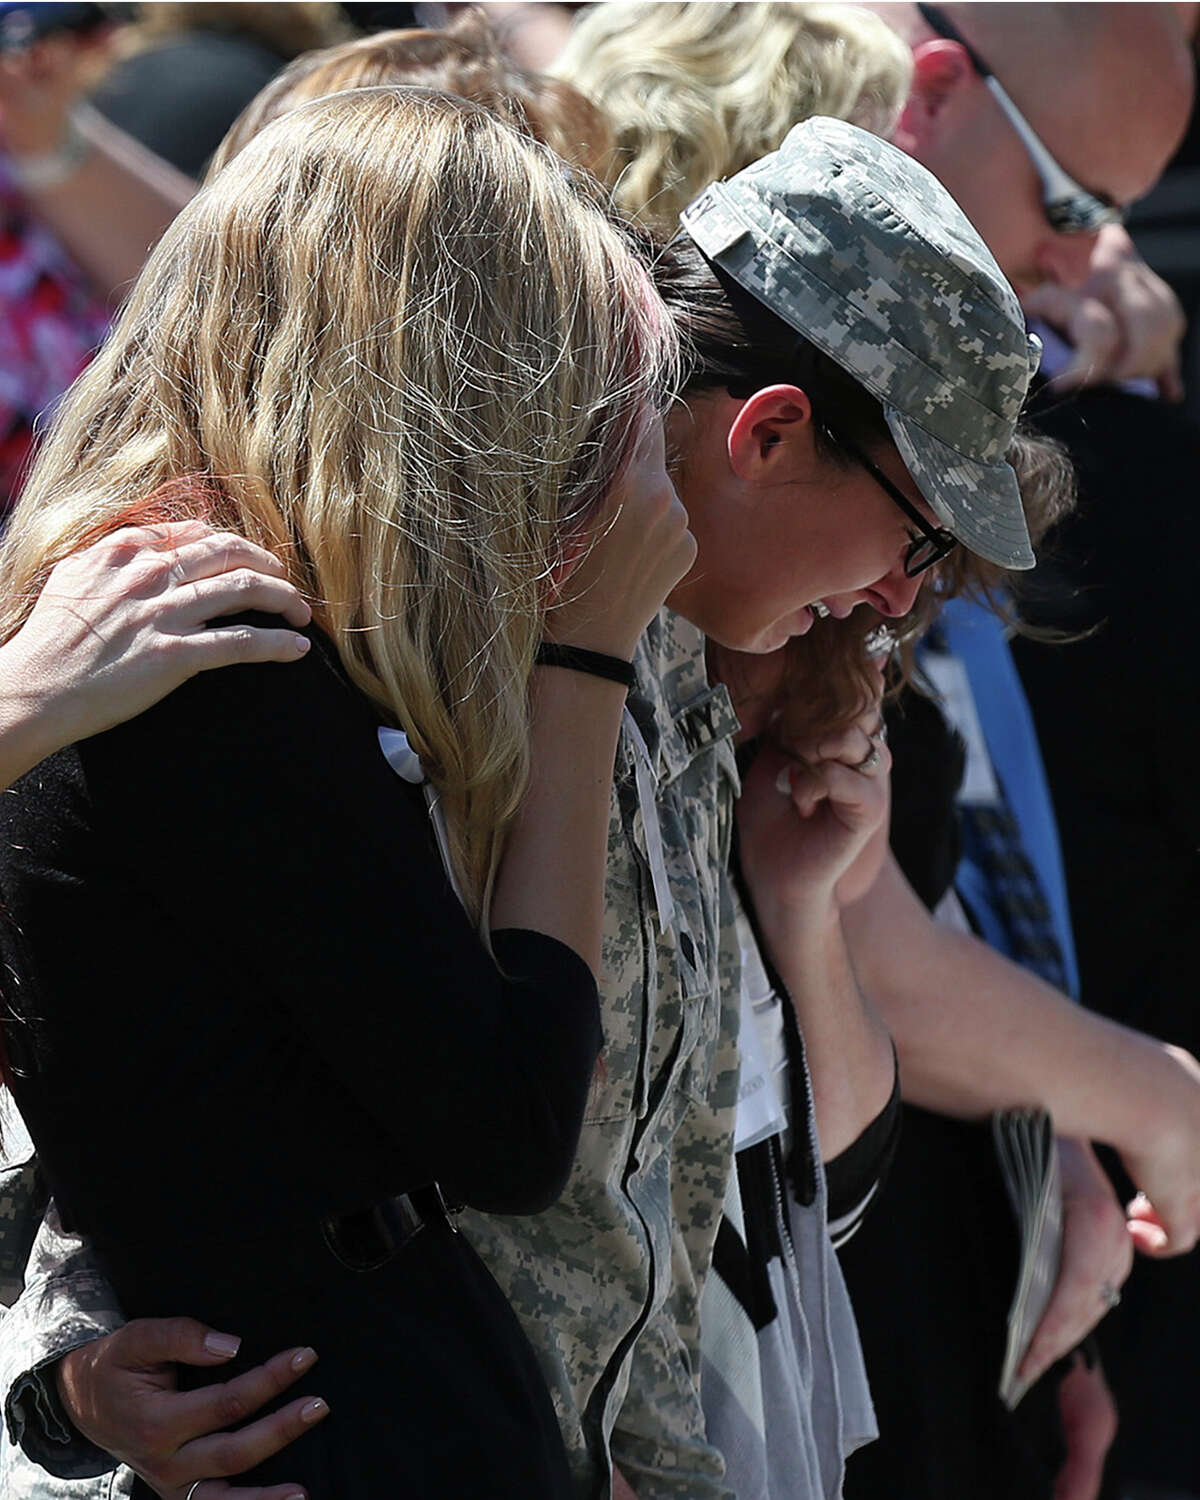 Mourners react during the III Corps and Fort Hood Memorial Ceremony, Wednesday, April 9, 2014. Sgt. First Class Daniel Michael Ferguson, Staff Sgt. Carlos Alberto Lazaney-Rodriguez and Sgt. Timothy Wayne Owens were killed and 16 others wounded when Spec. Ivan Lopez opened fire the April 2 attack at the installation. Lopez committed suicide after the attack. President Barack Obama and First Lady Michelle Obama attended the ceremony.